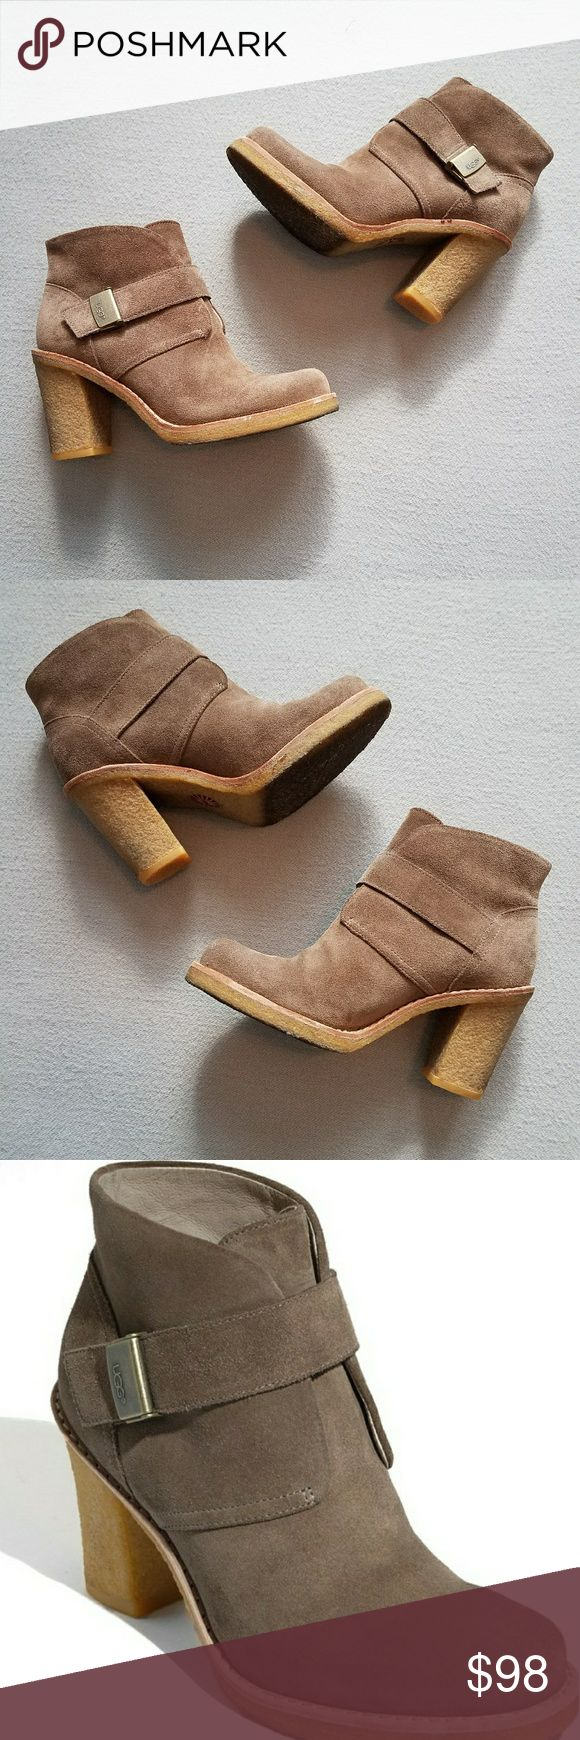 """Uggs Brienne Tan Suede Ankle Boots SZ 7.5 Great Condition, I only Wore these maybe 3 - 4X. Inside looks great  (clean), a few marks on the heels from my jeans. Bottoms are in good condition but dirty. I think it's  the """"gum"""" sole. Please see all pictures for Best description.   Purchased from Nordstrom UGG Shoes Ankle Boots & Booties"""